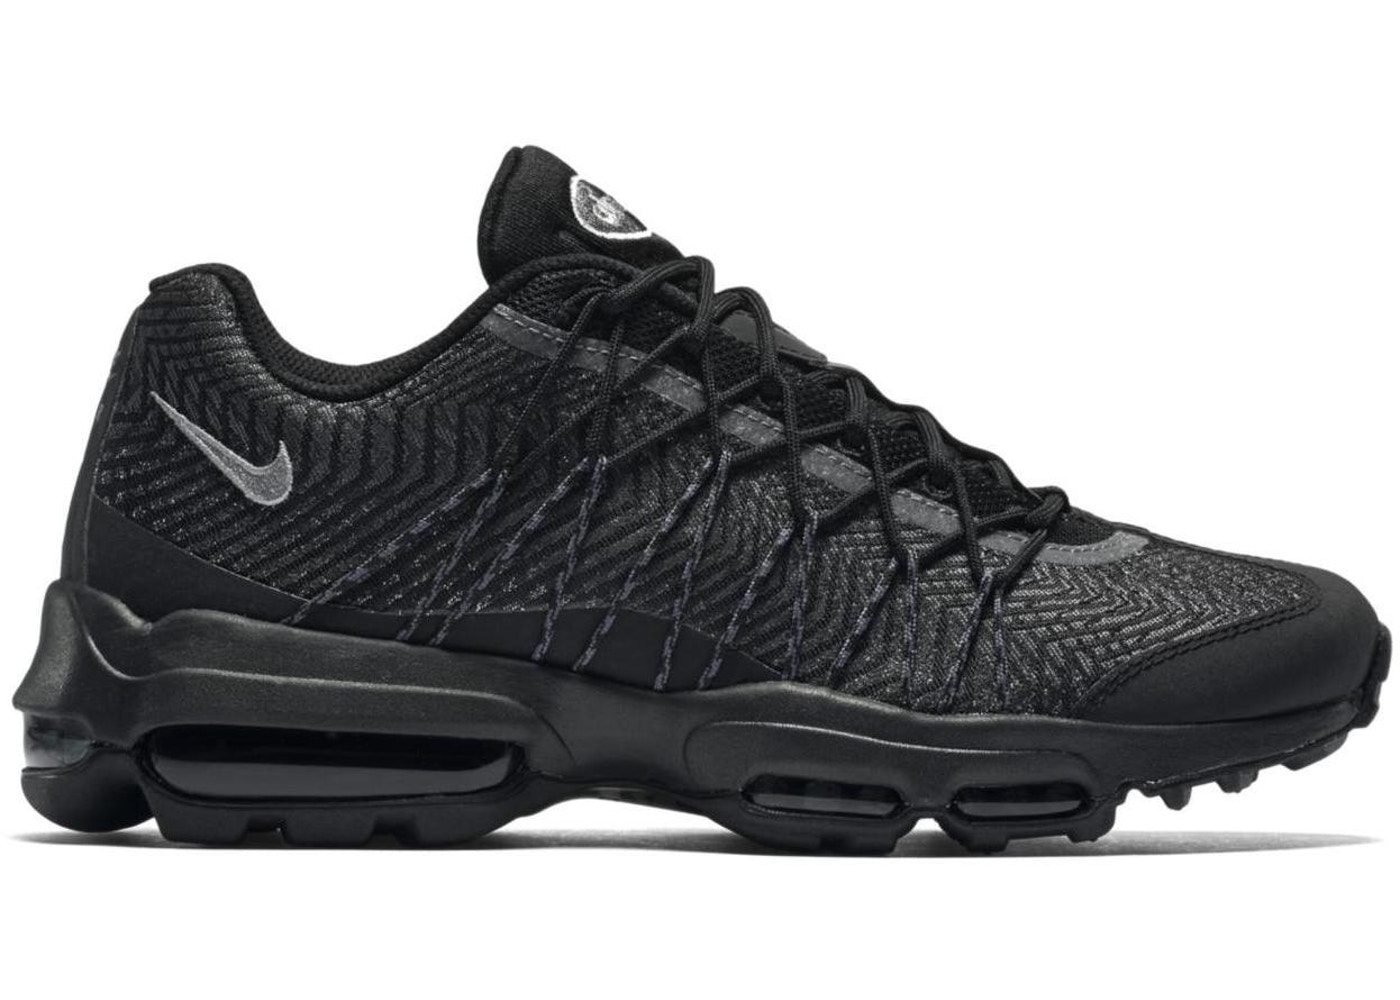 f2dd107fbadc2f Sell. or Ask. Size 9. View All Bids. Air Max 95 Jacquard Black Silver